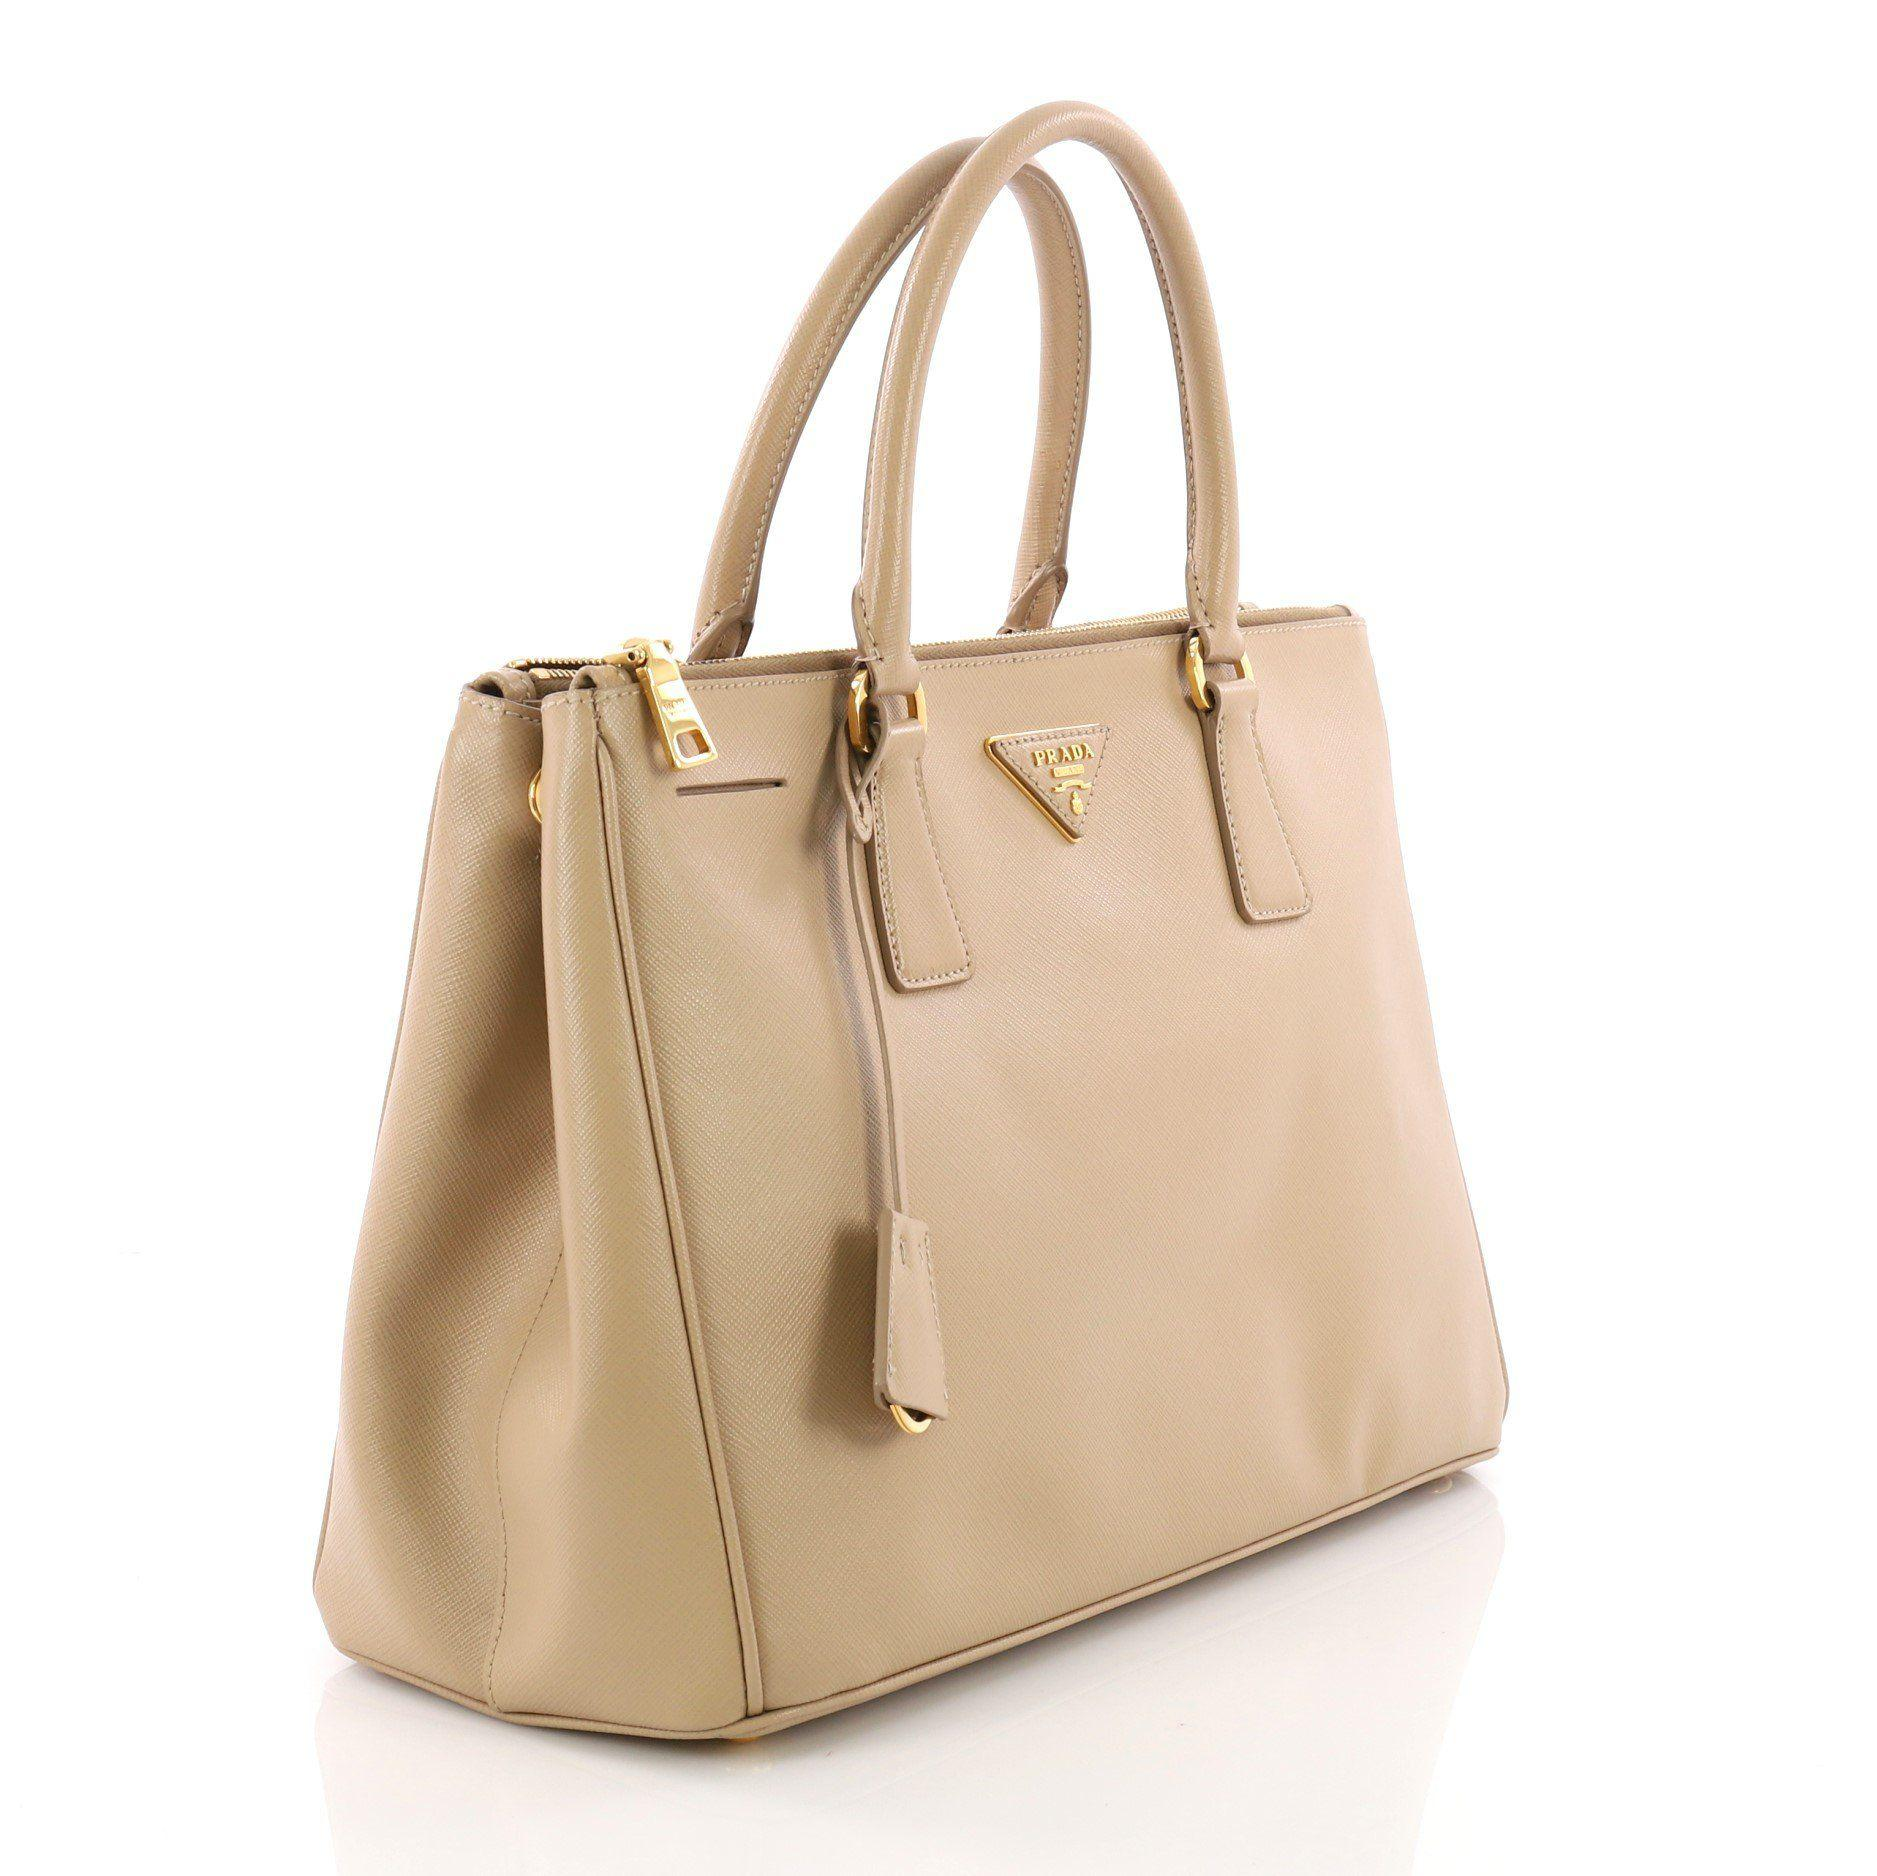 857b7f425d2f68 Lyst - Prada Pre Owned Double Zip Lux Tote Saffiano Leather Medium ...